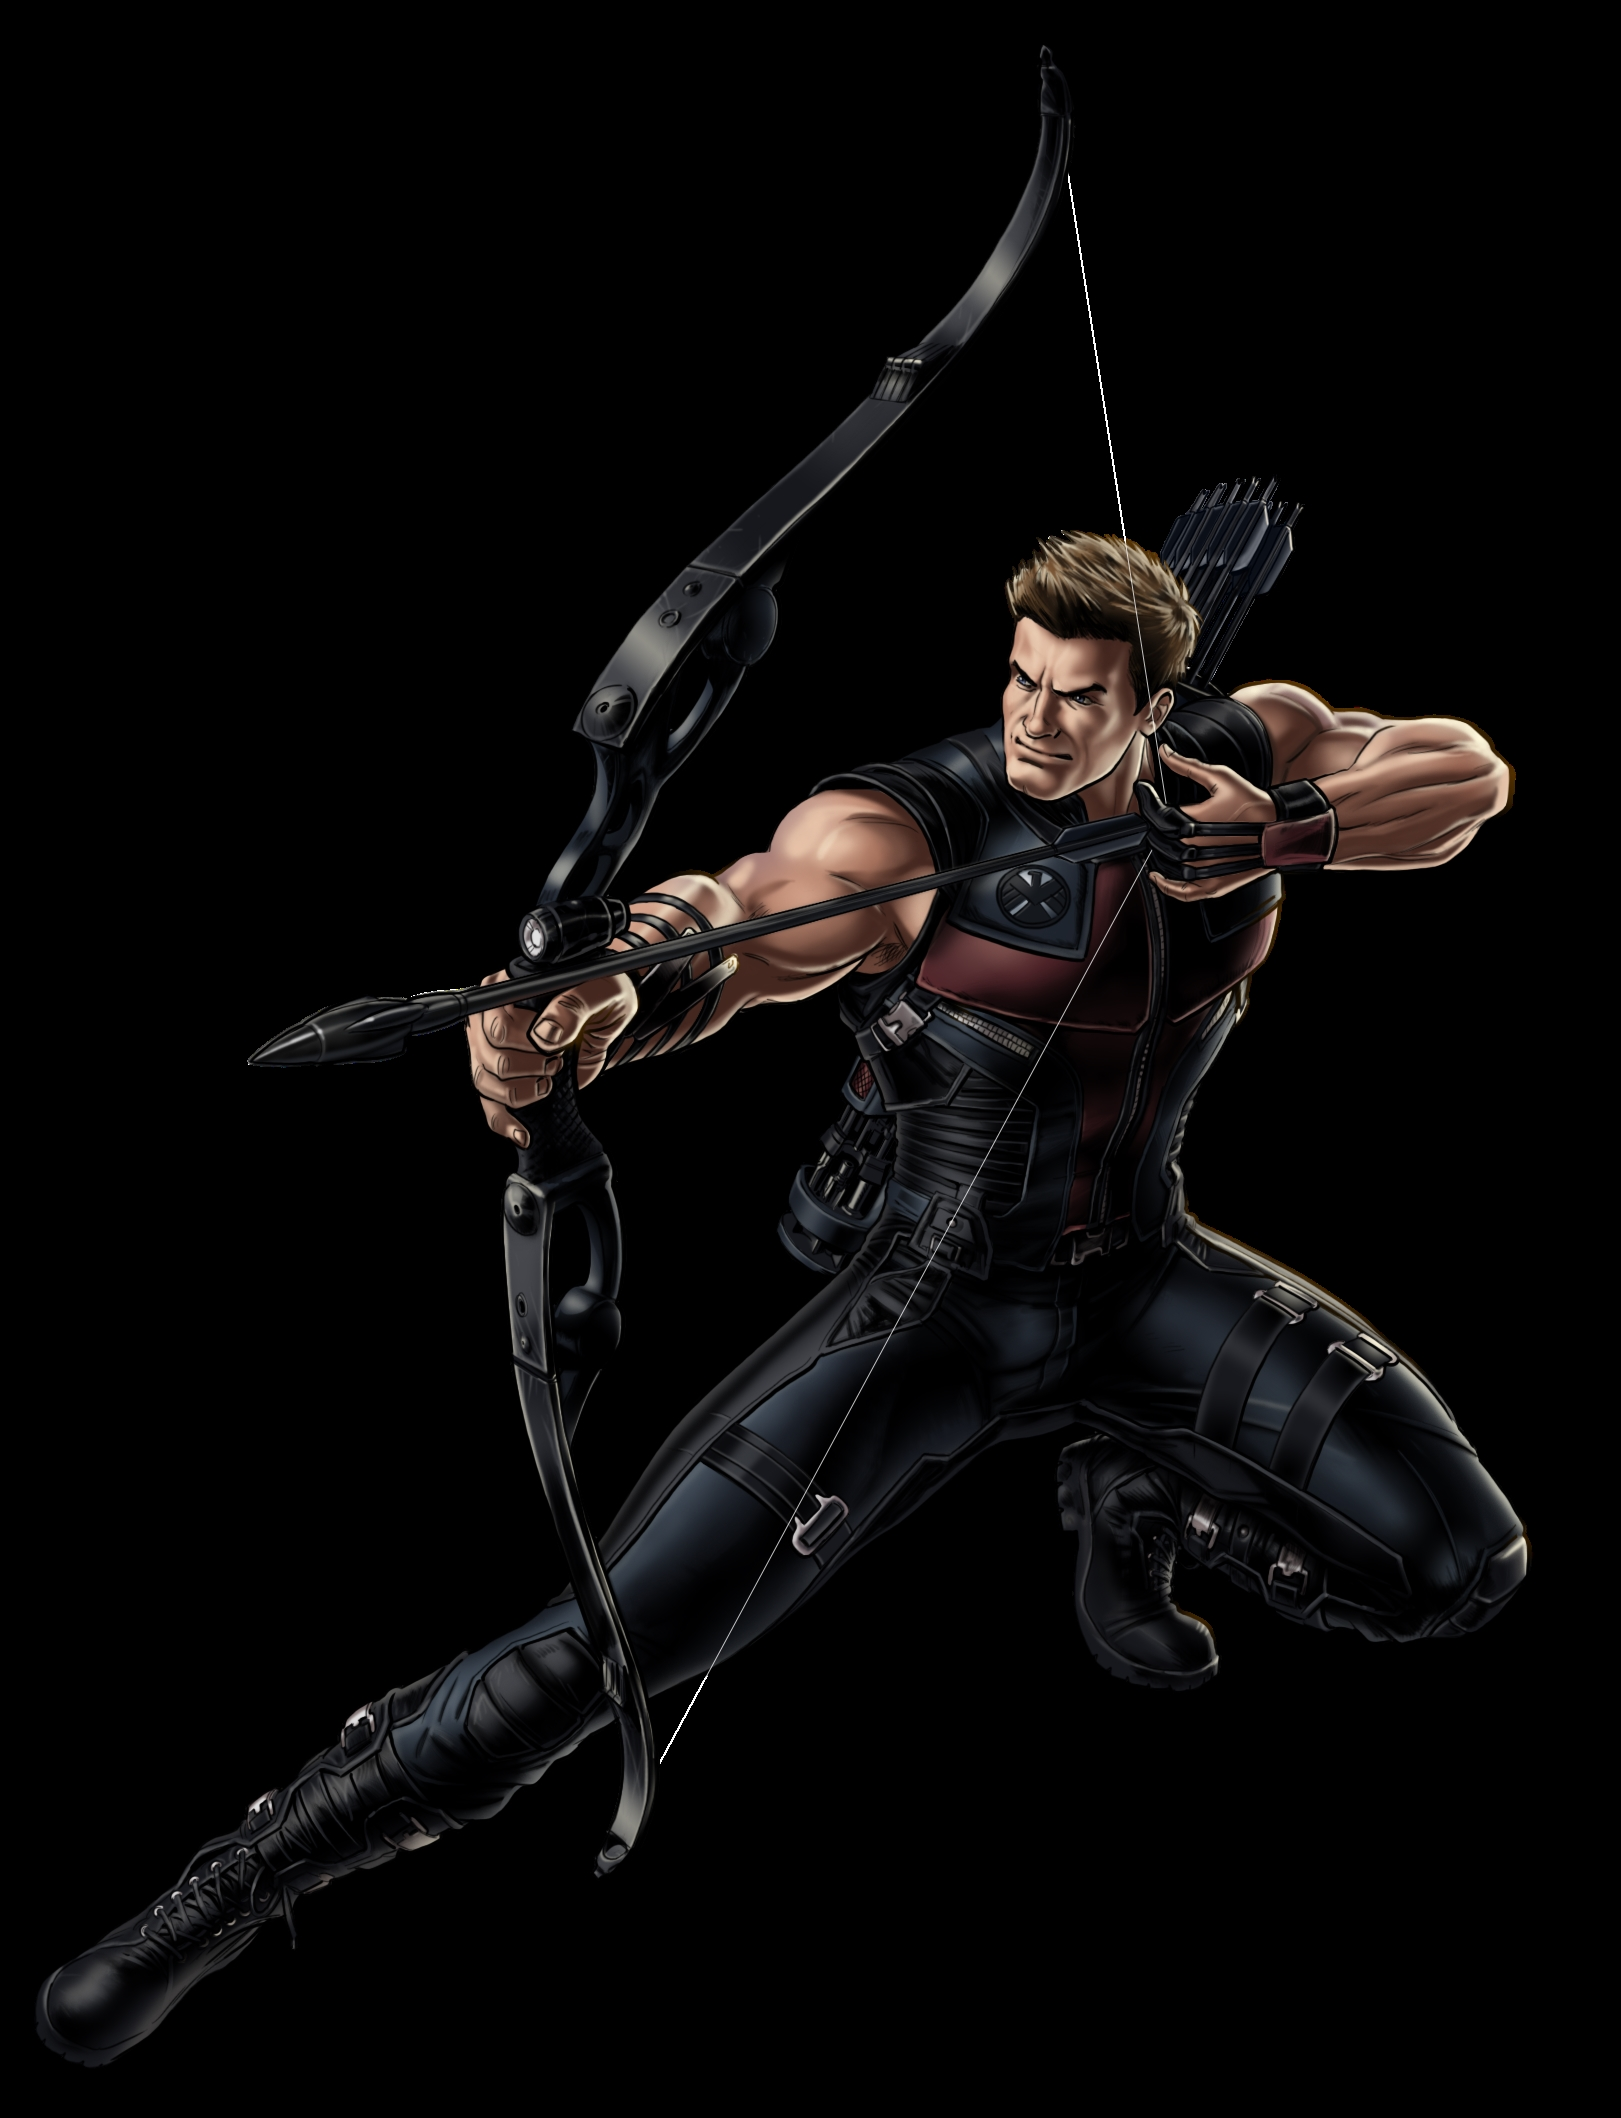 hawkeye wallpapers page - photo #1